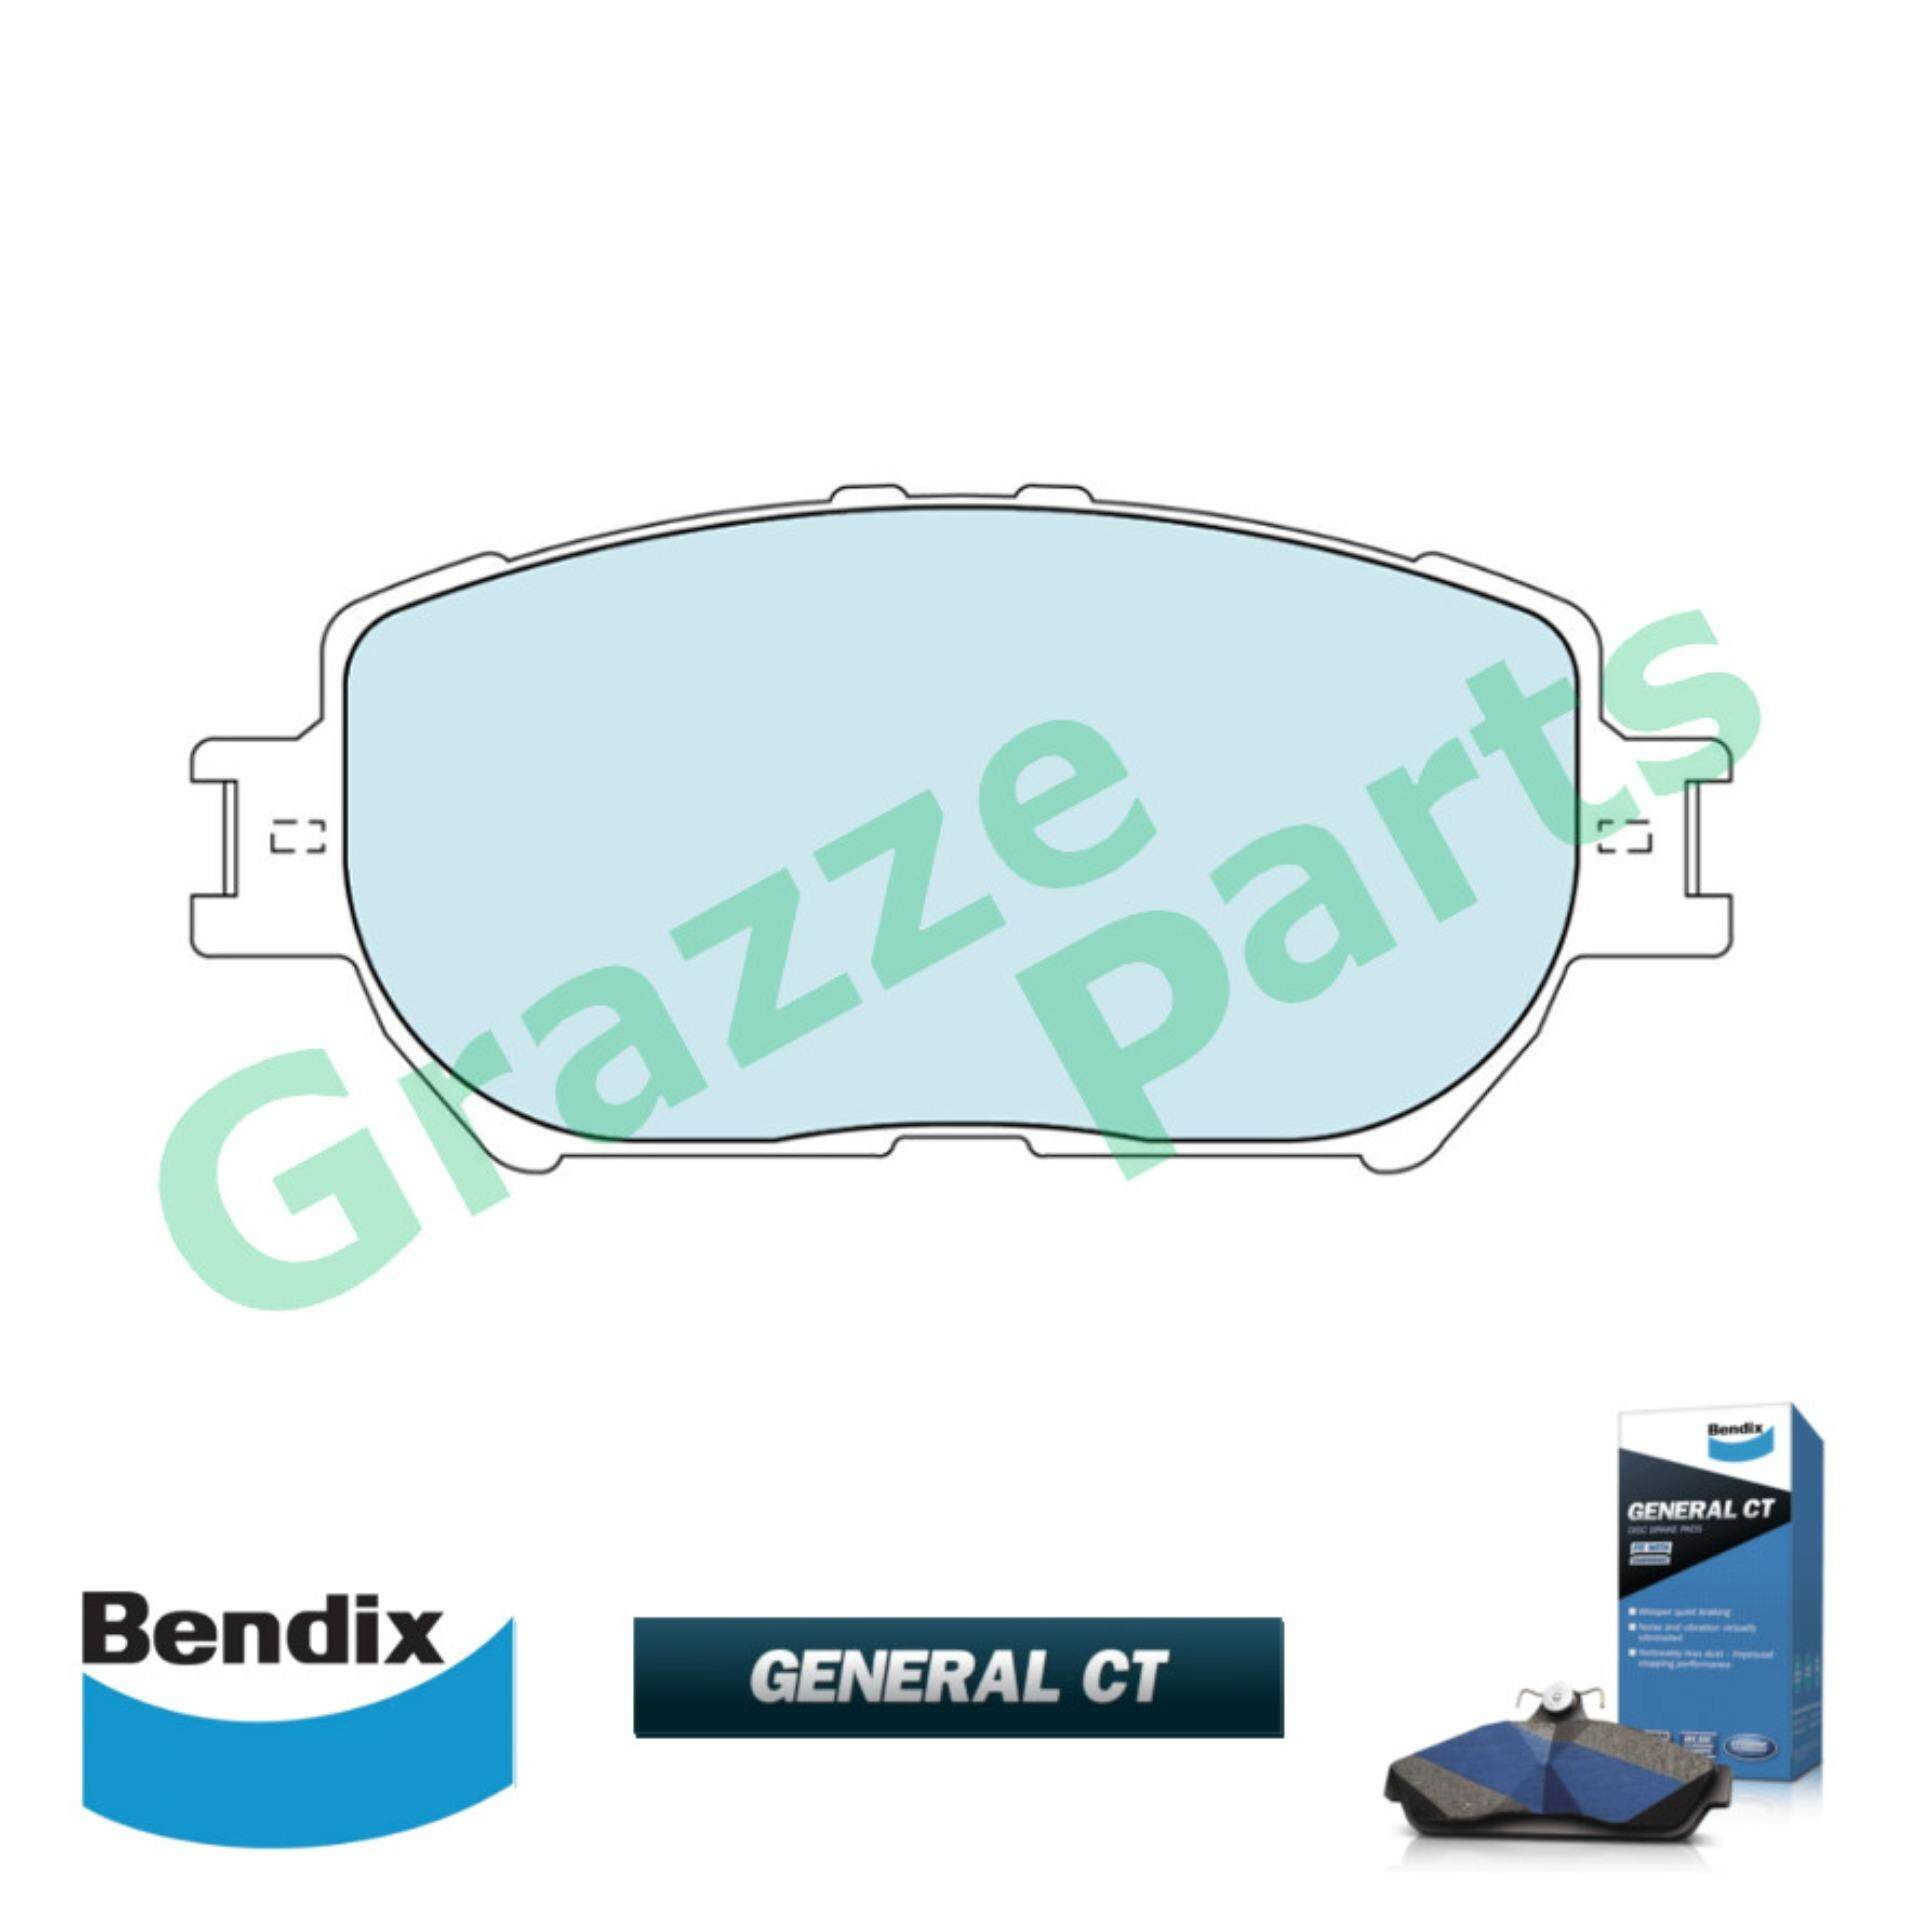 Bendix General CT Disc Brake Pad Front for DB1462 - Toyota Camry ACV30 ACV31 2.0 2.4 Wish